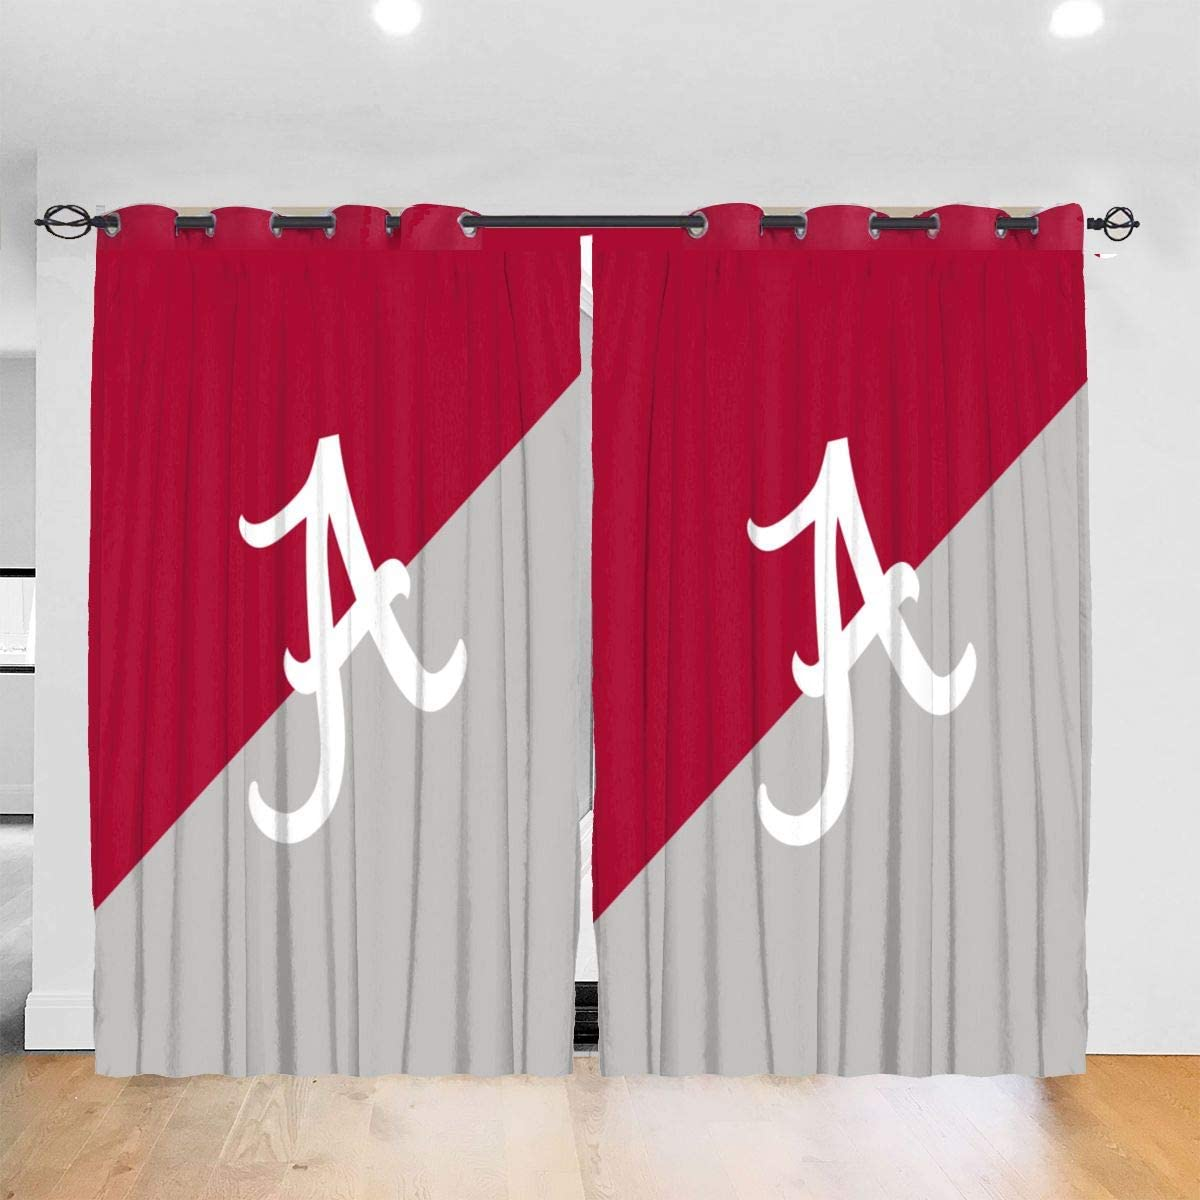 VF LSG Alabama Crimson Tide Colleage Team Blackout Curtains are Used in Bedrooms and Living Rooms, Noise-Proof Thermal Insulation Curtains 52 X 72 in